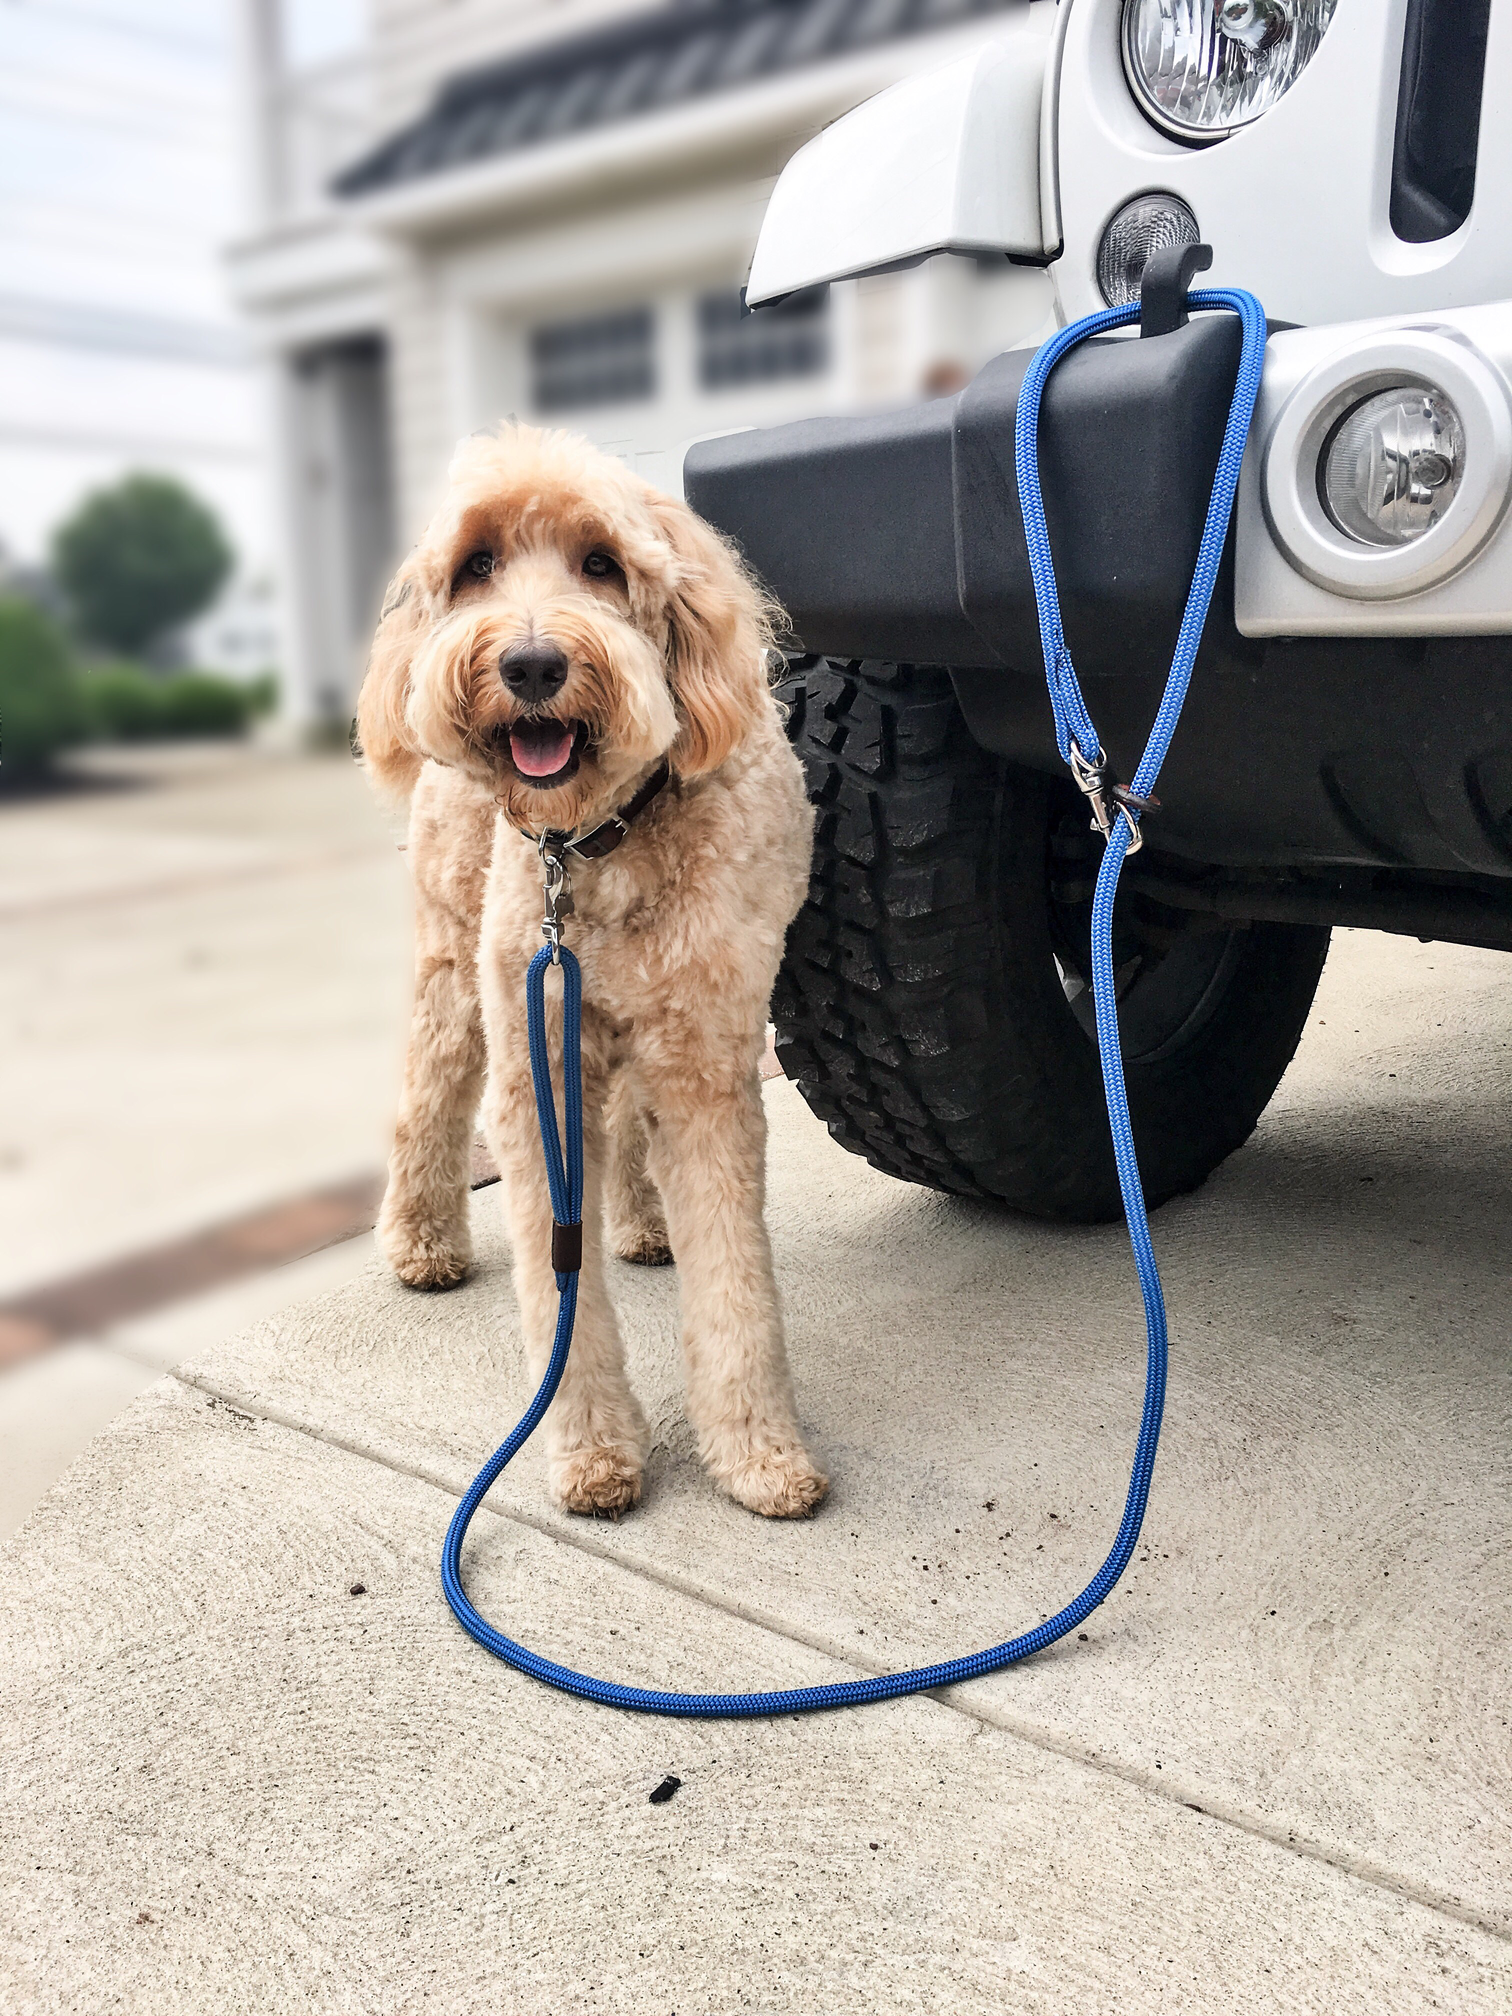 Rope Leash Dog accessories, Jeep dogs, Dogs